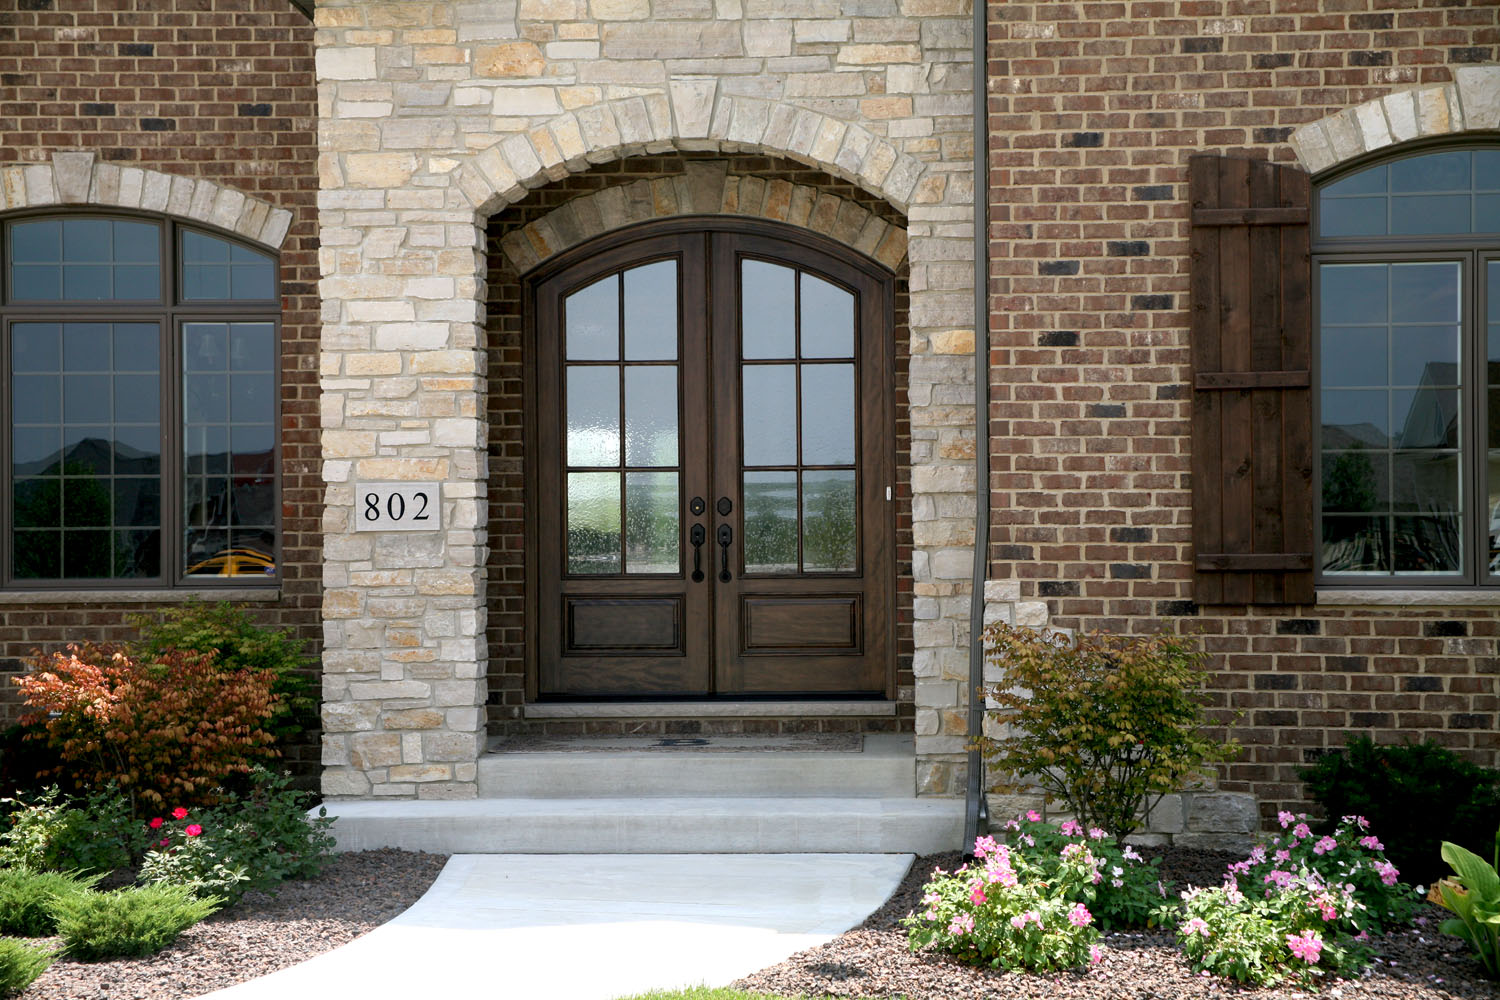 1000 #496032 Arch Doors Arched Top Doors Exterior Arched Doors save image Arch Doors Exterior 39771500